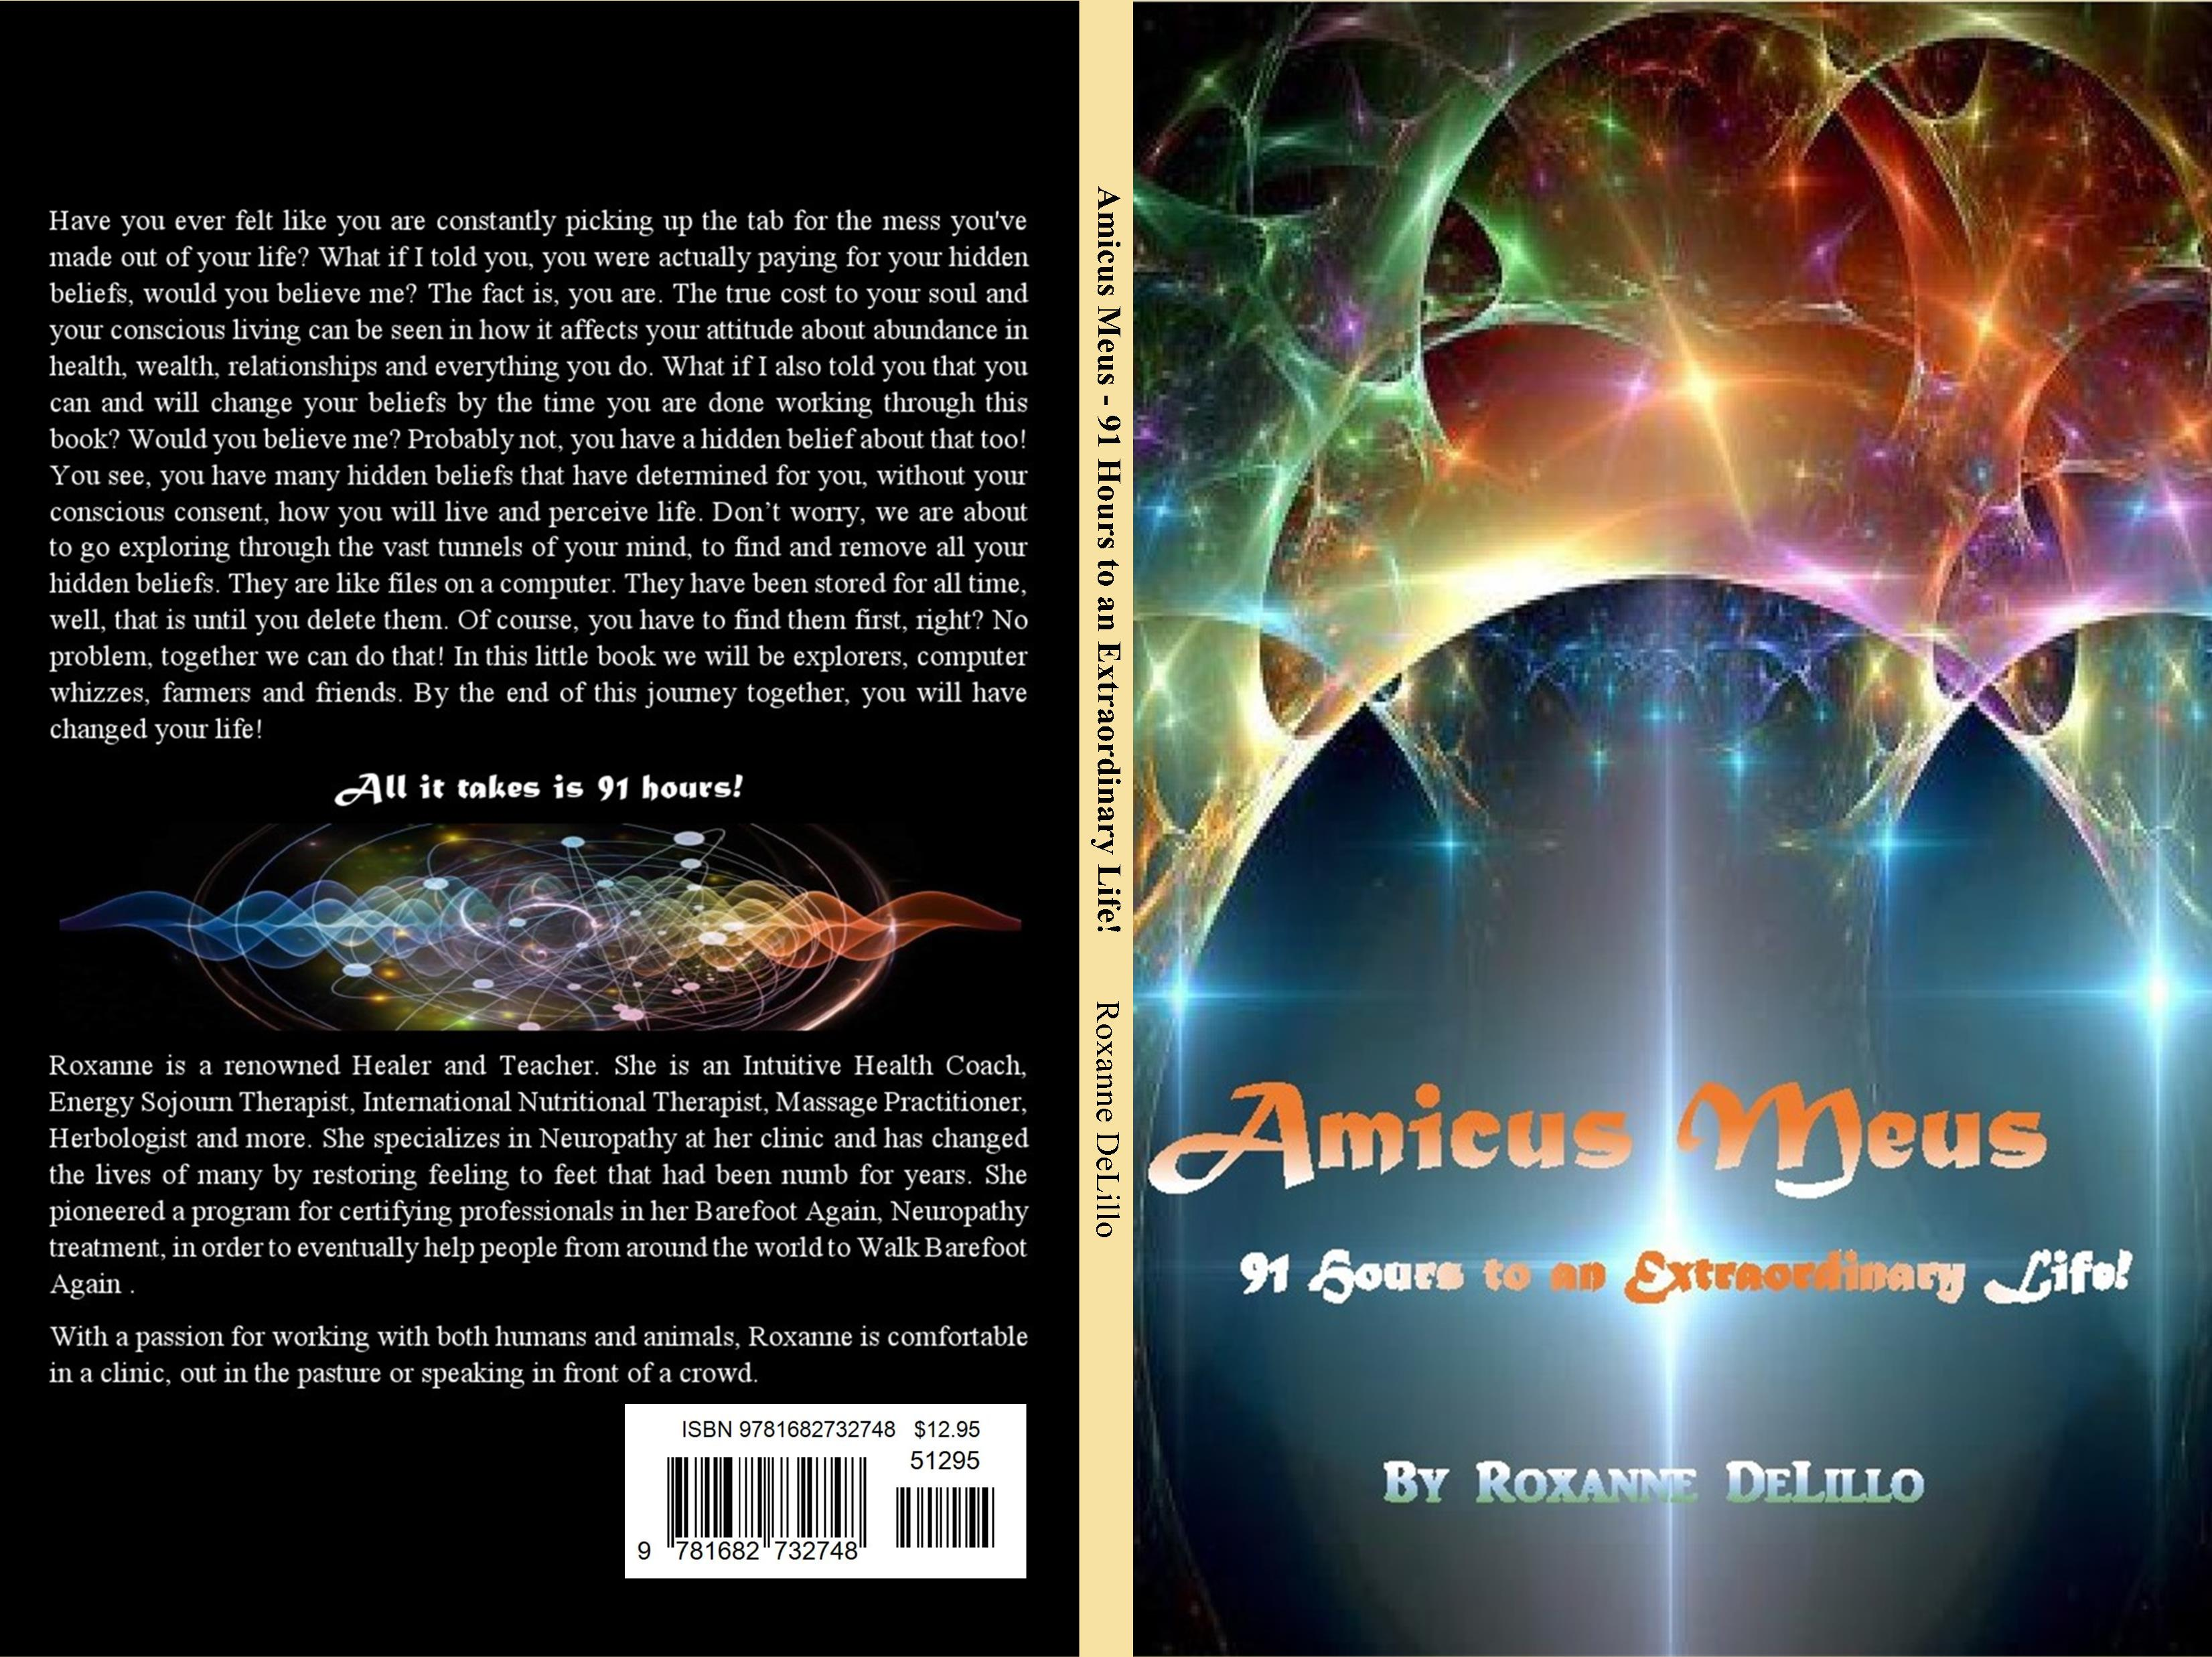 Amicus Meus - 91 Hours to an Extraordinary Life! cover image